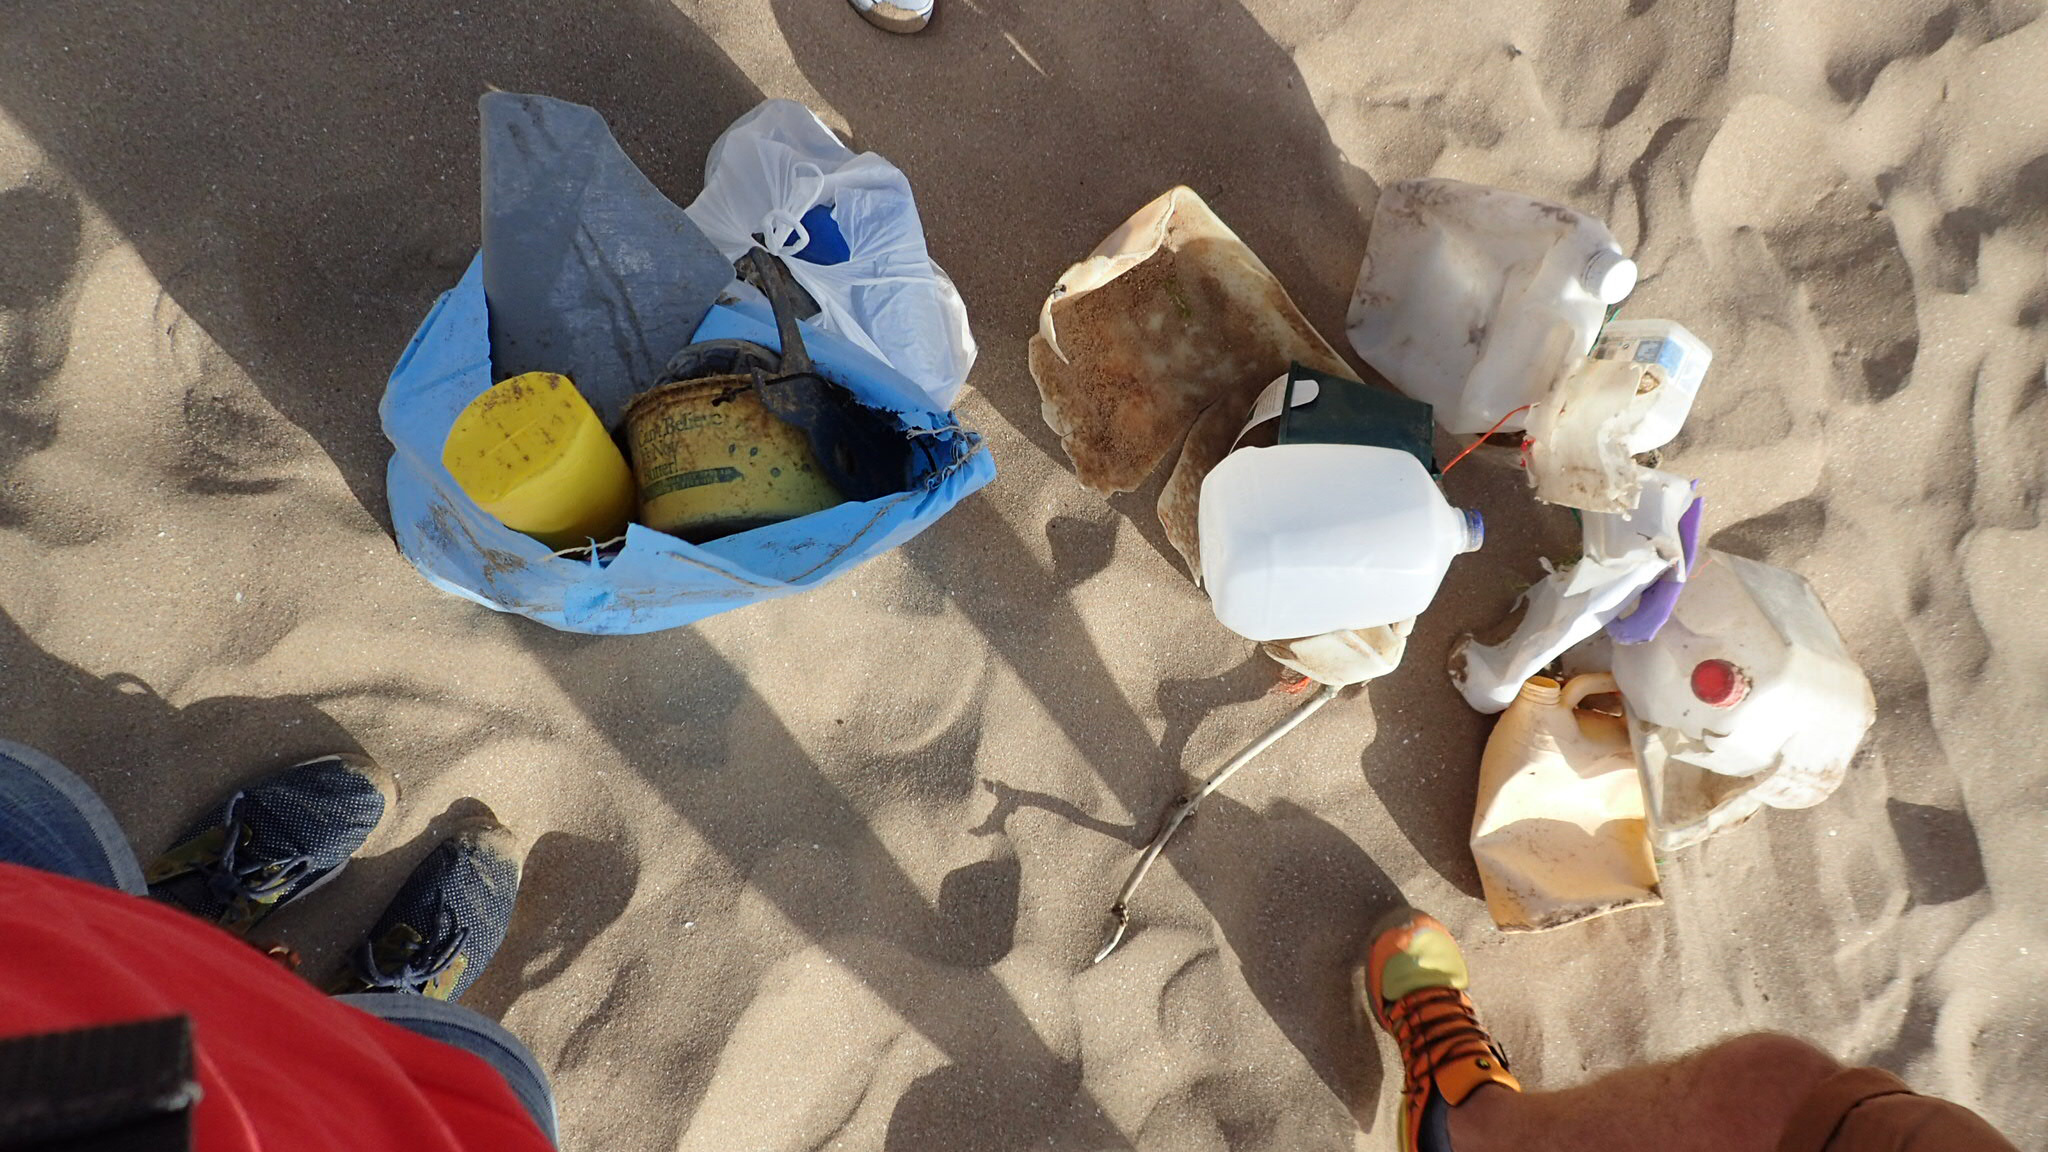 The collection of plastic picked up between Putsborough and Woolacombe